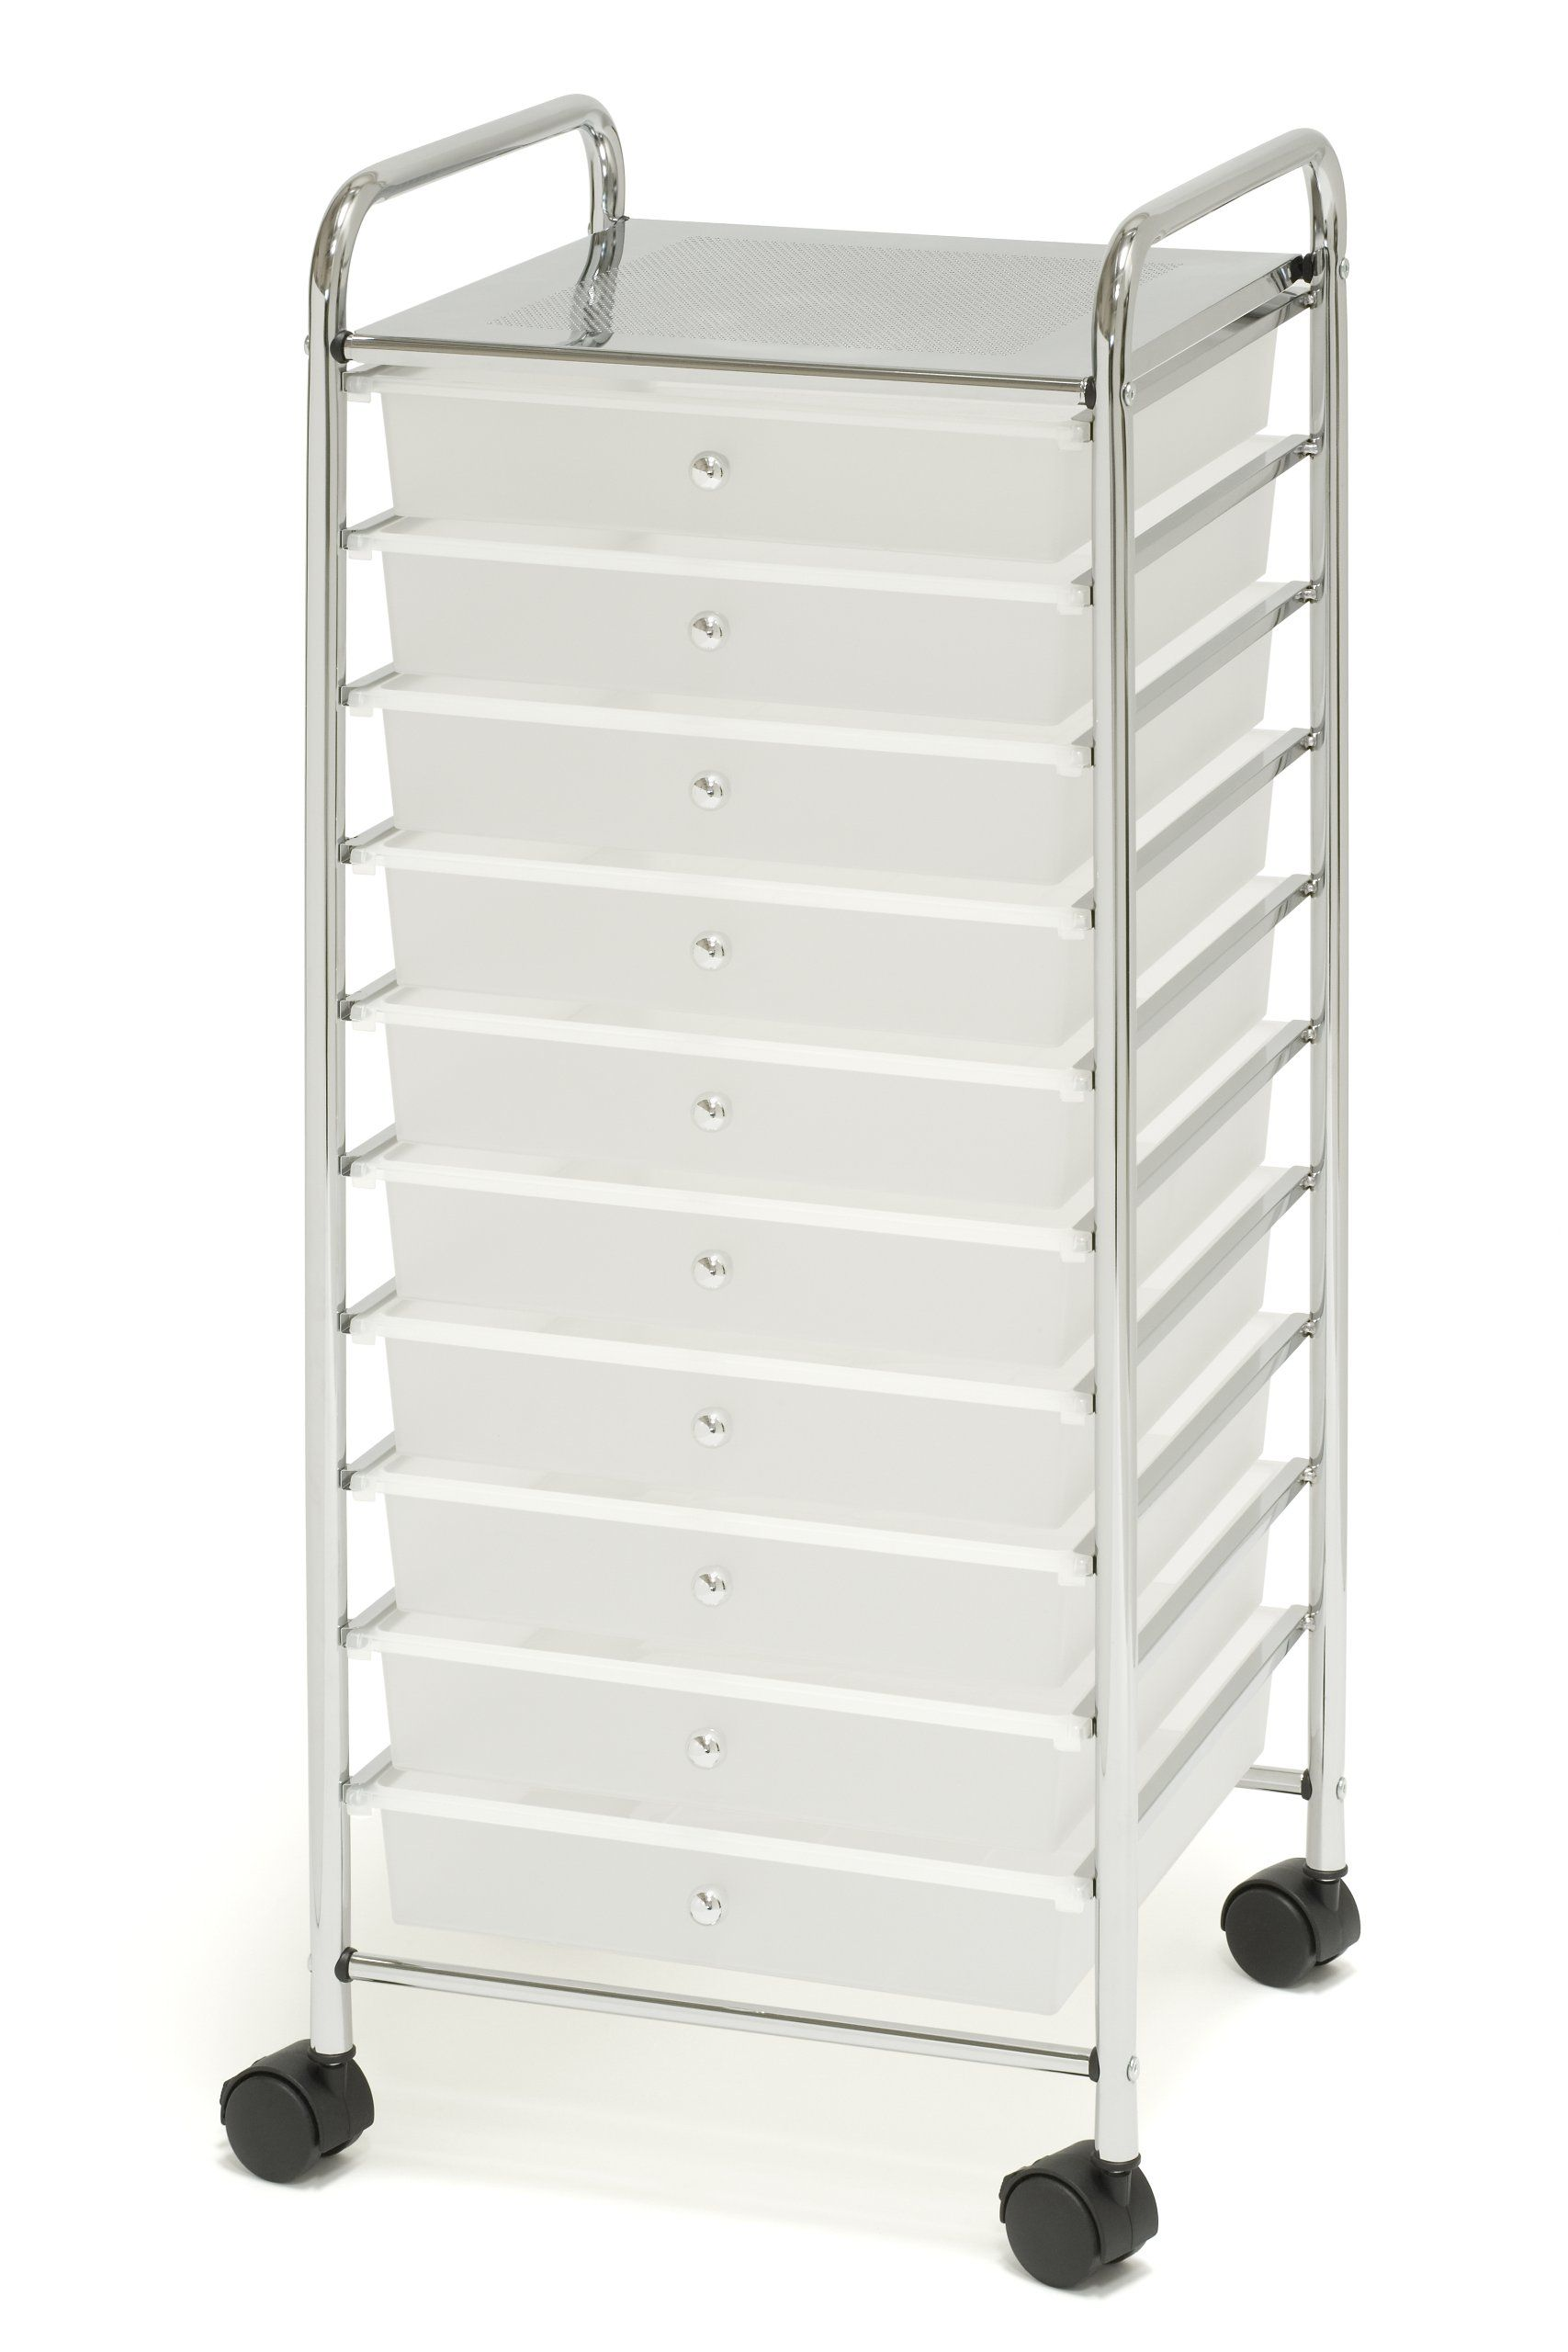 Seville Classics 15 5 Inch By 15 4 Inch By 38 2 Inch 10 Drawer Organizer Cart Drawer Organisers Organization Cart Office Furniture Accessories